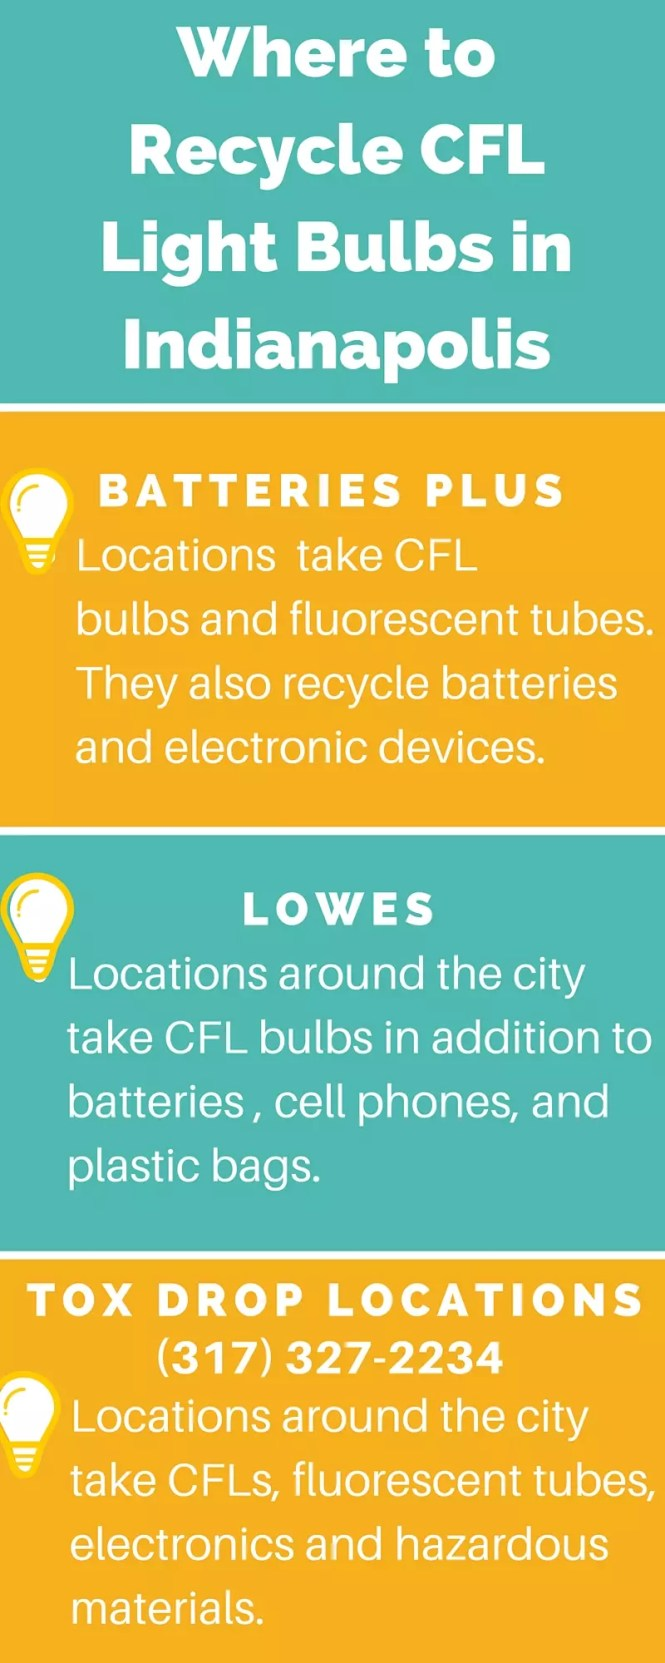 Where To Recycle Light Bulbs Indianapolis Infographic